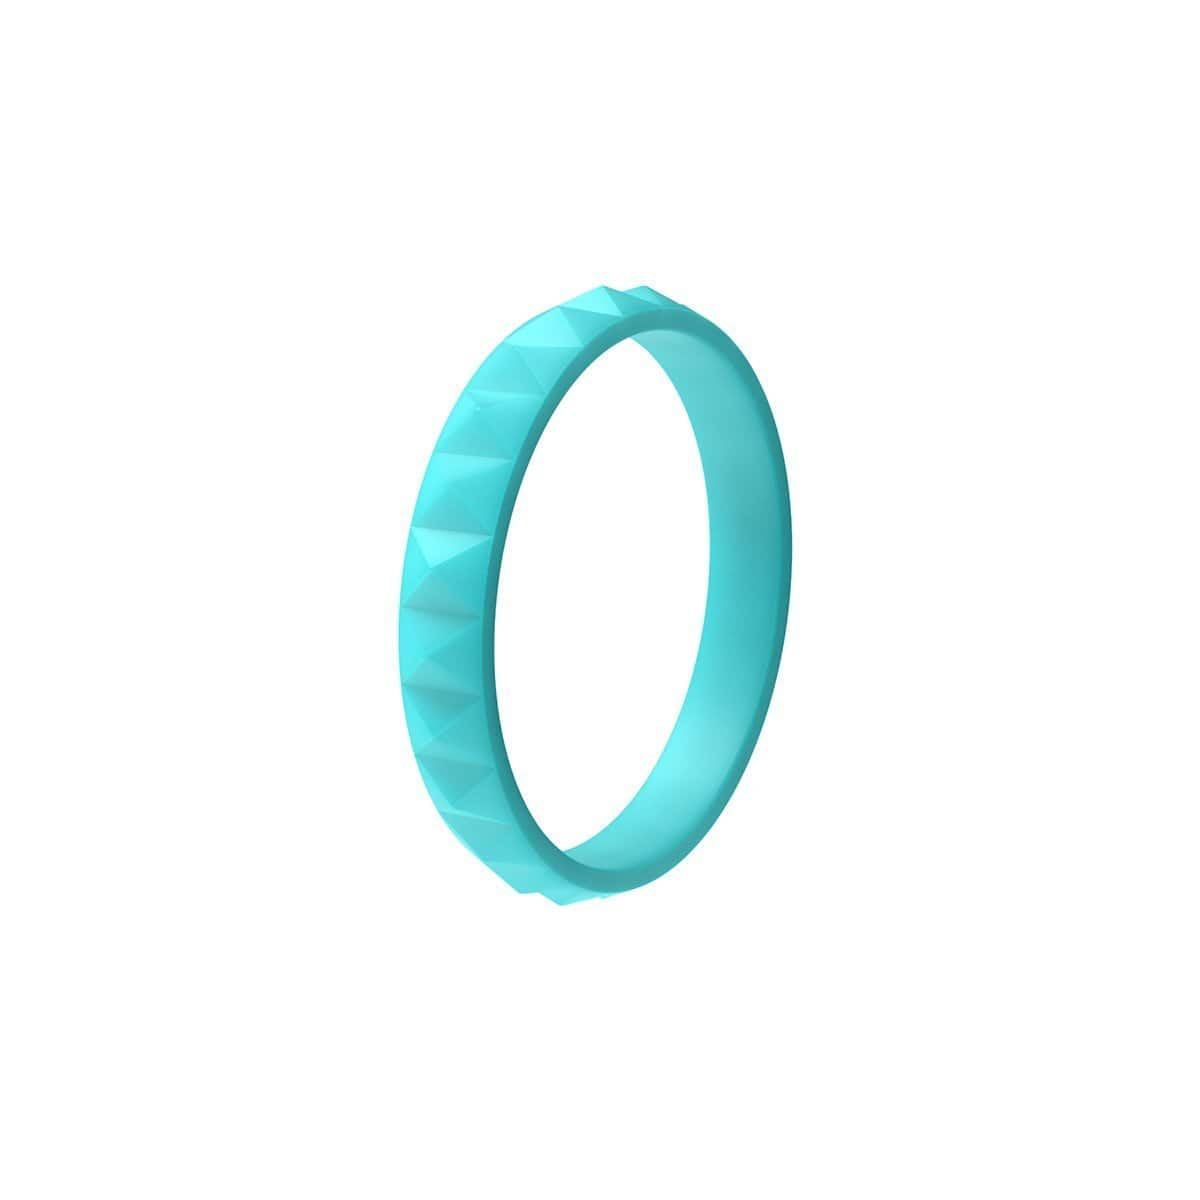 most projects enso rings original functional ensorings pla wedding on versatile planet safest the kickstarter ring by